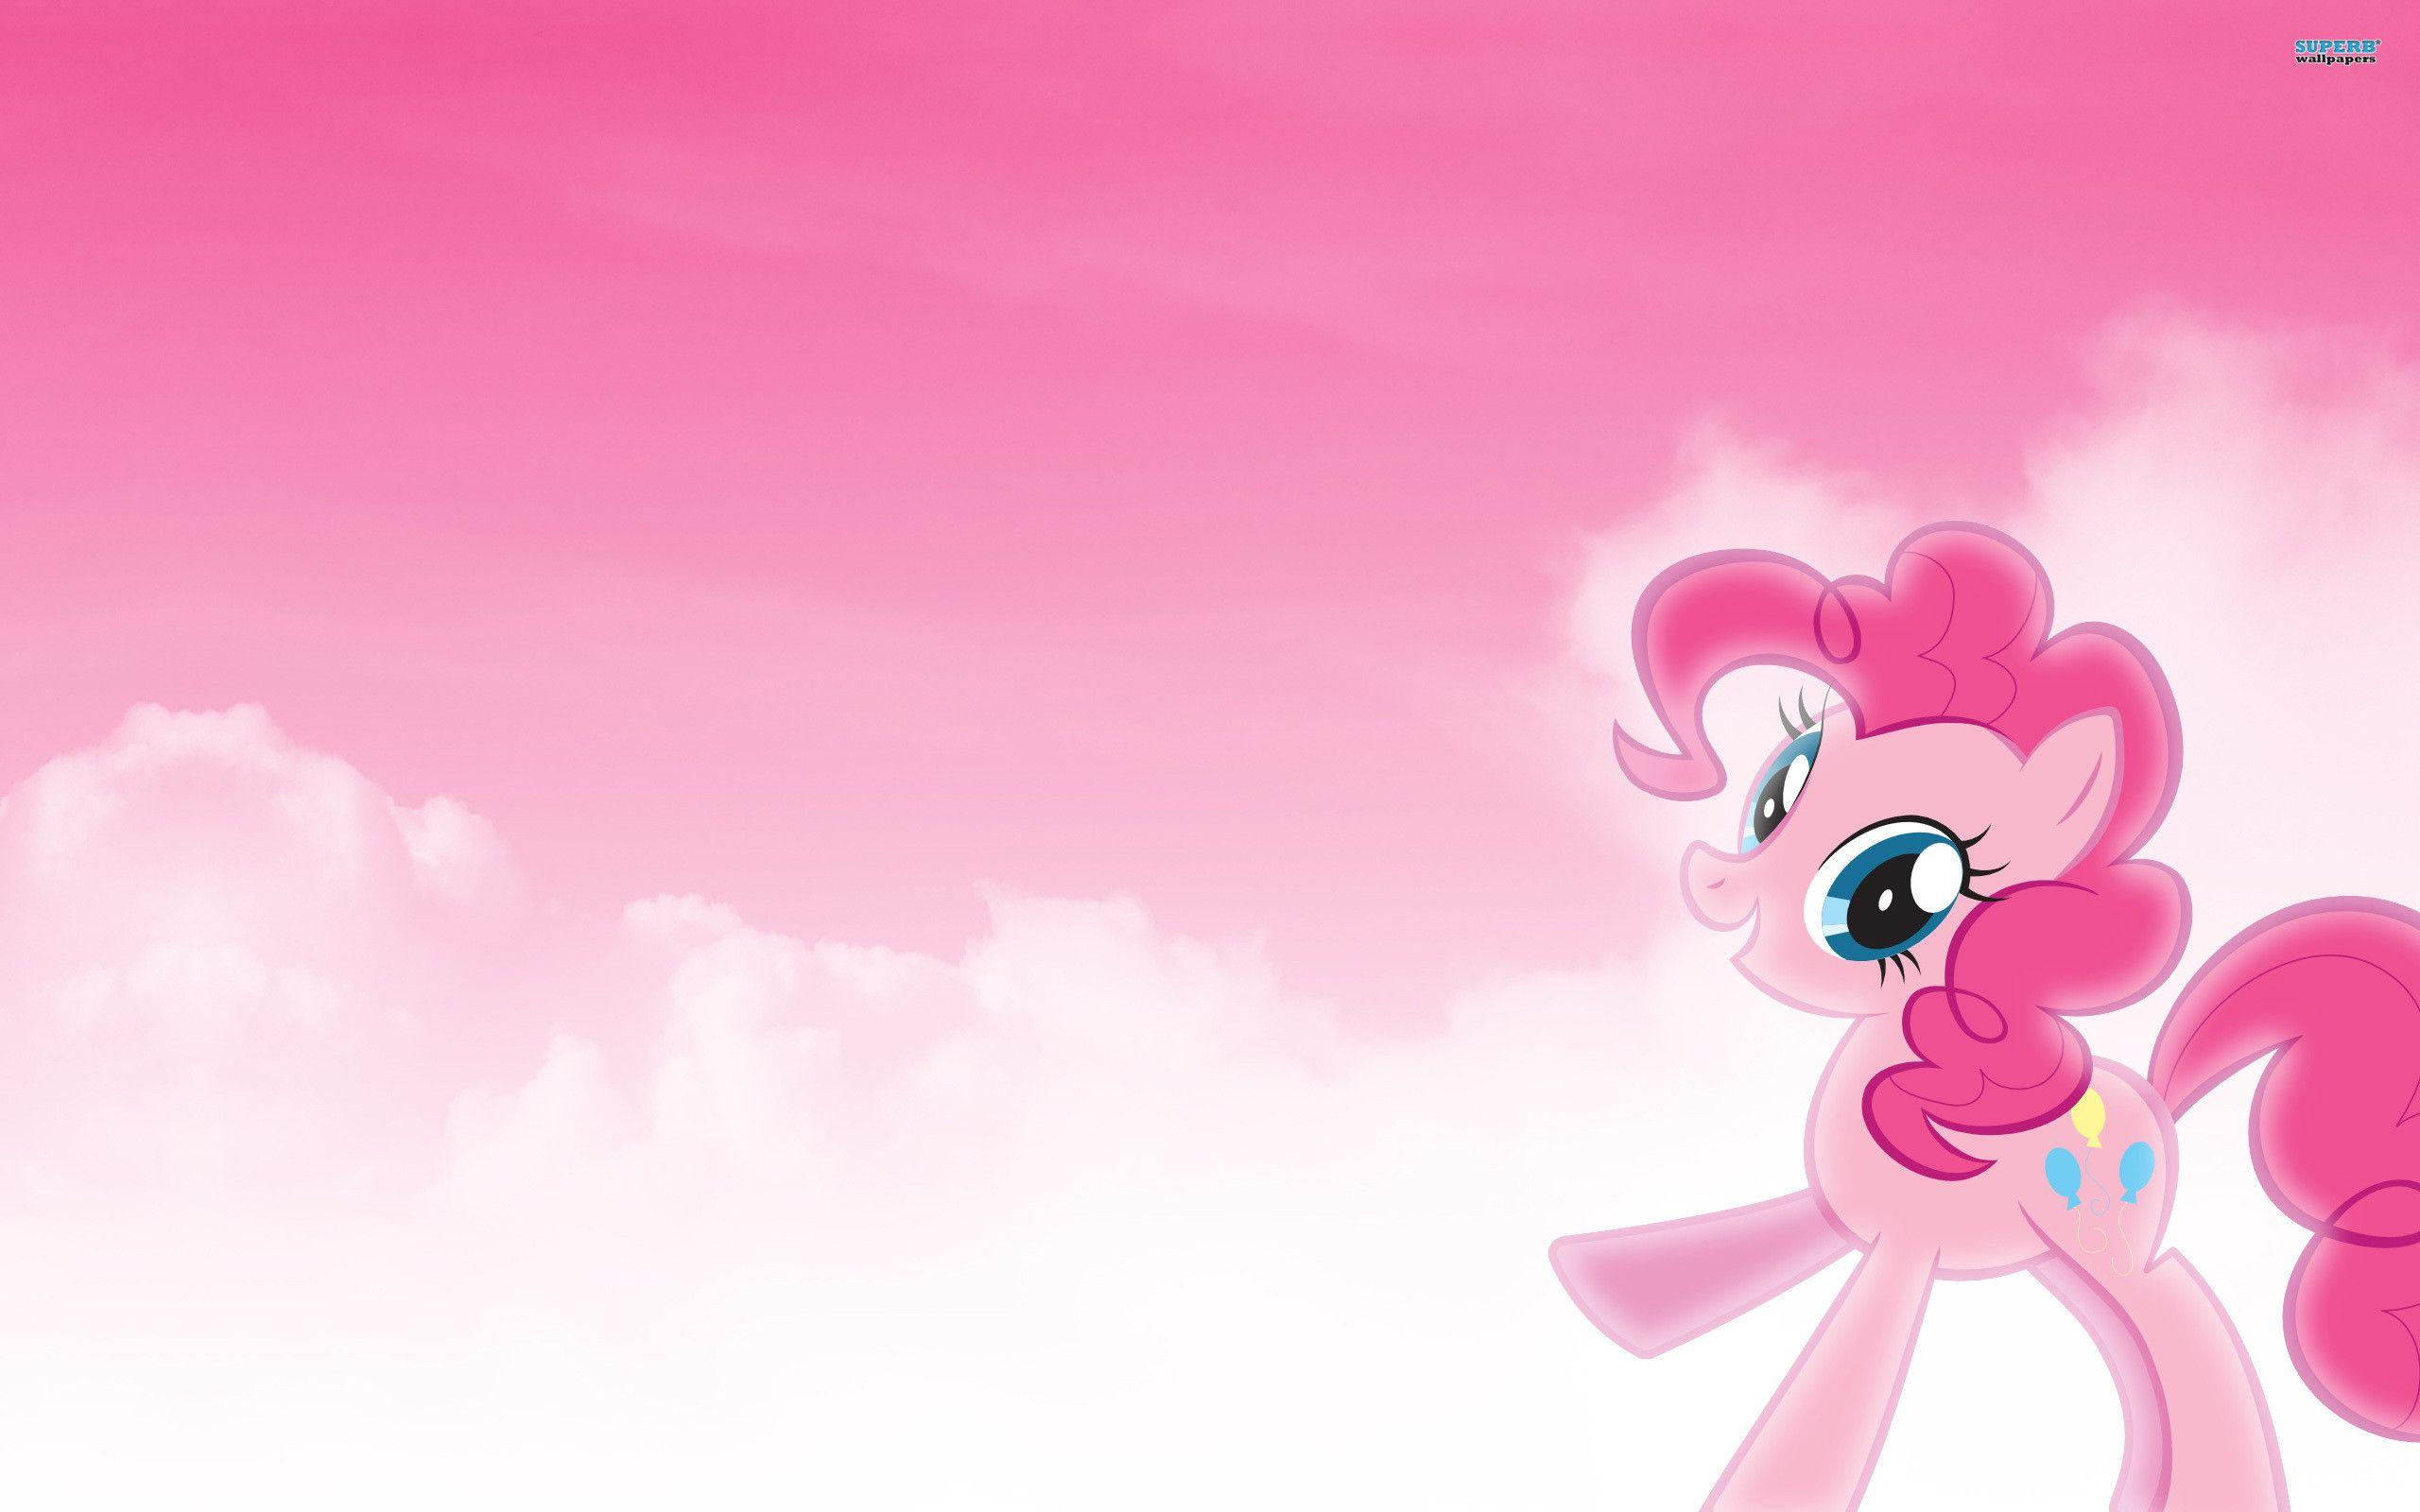 mlp background pony wallpapers - photo #5